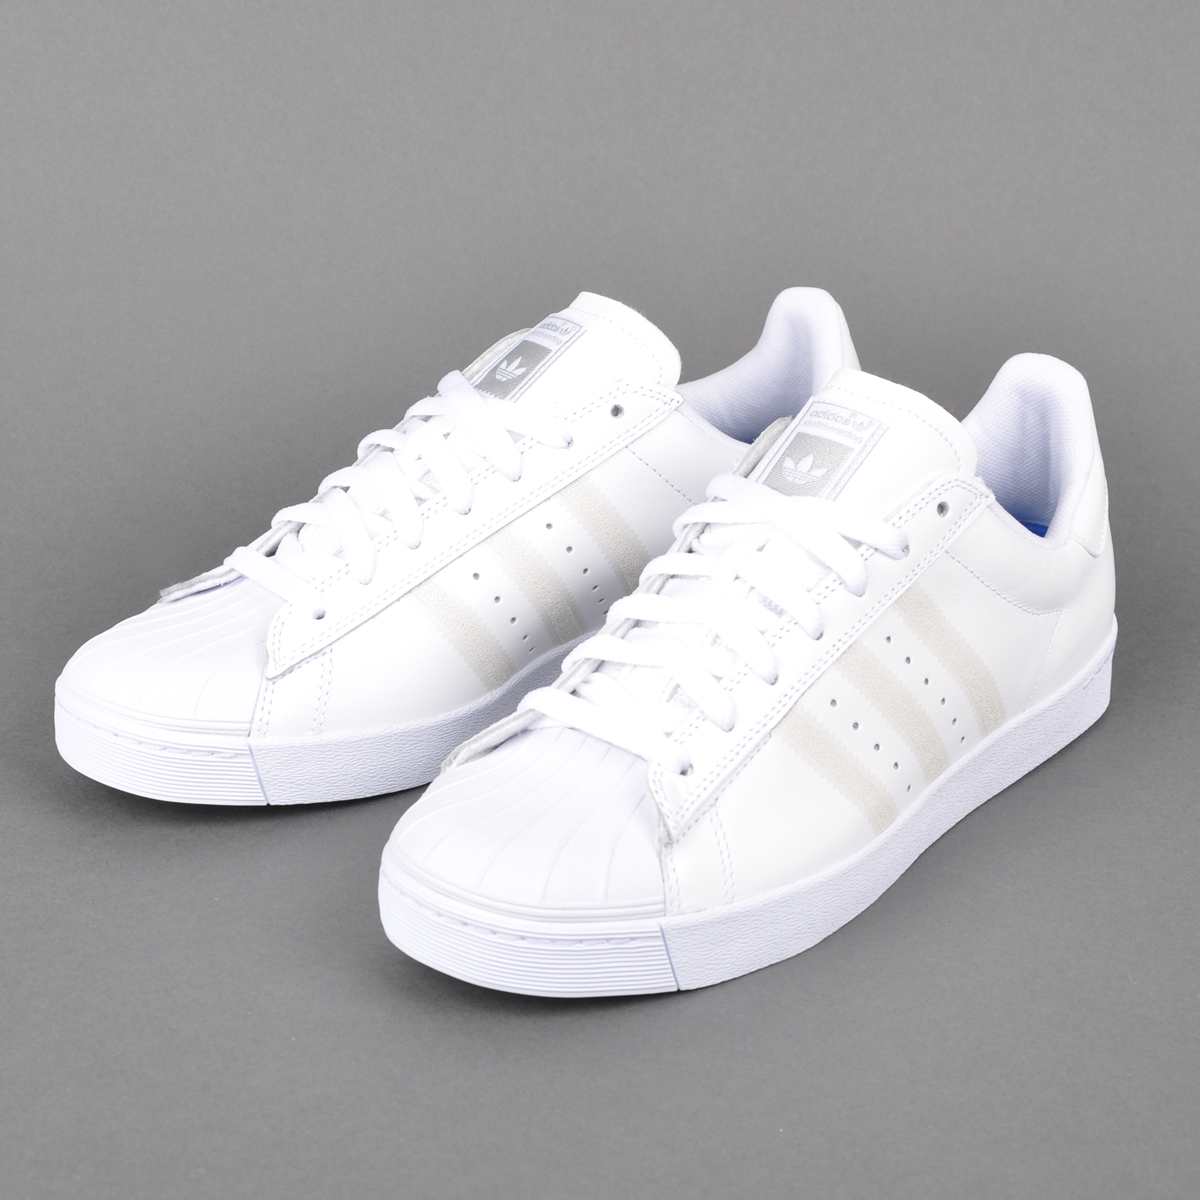 big sale 448cb 92927 Buy Cheap Adidas Superstar Vulc ADV Shoes Sale Online 2018